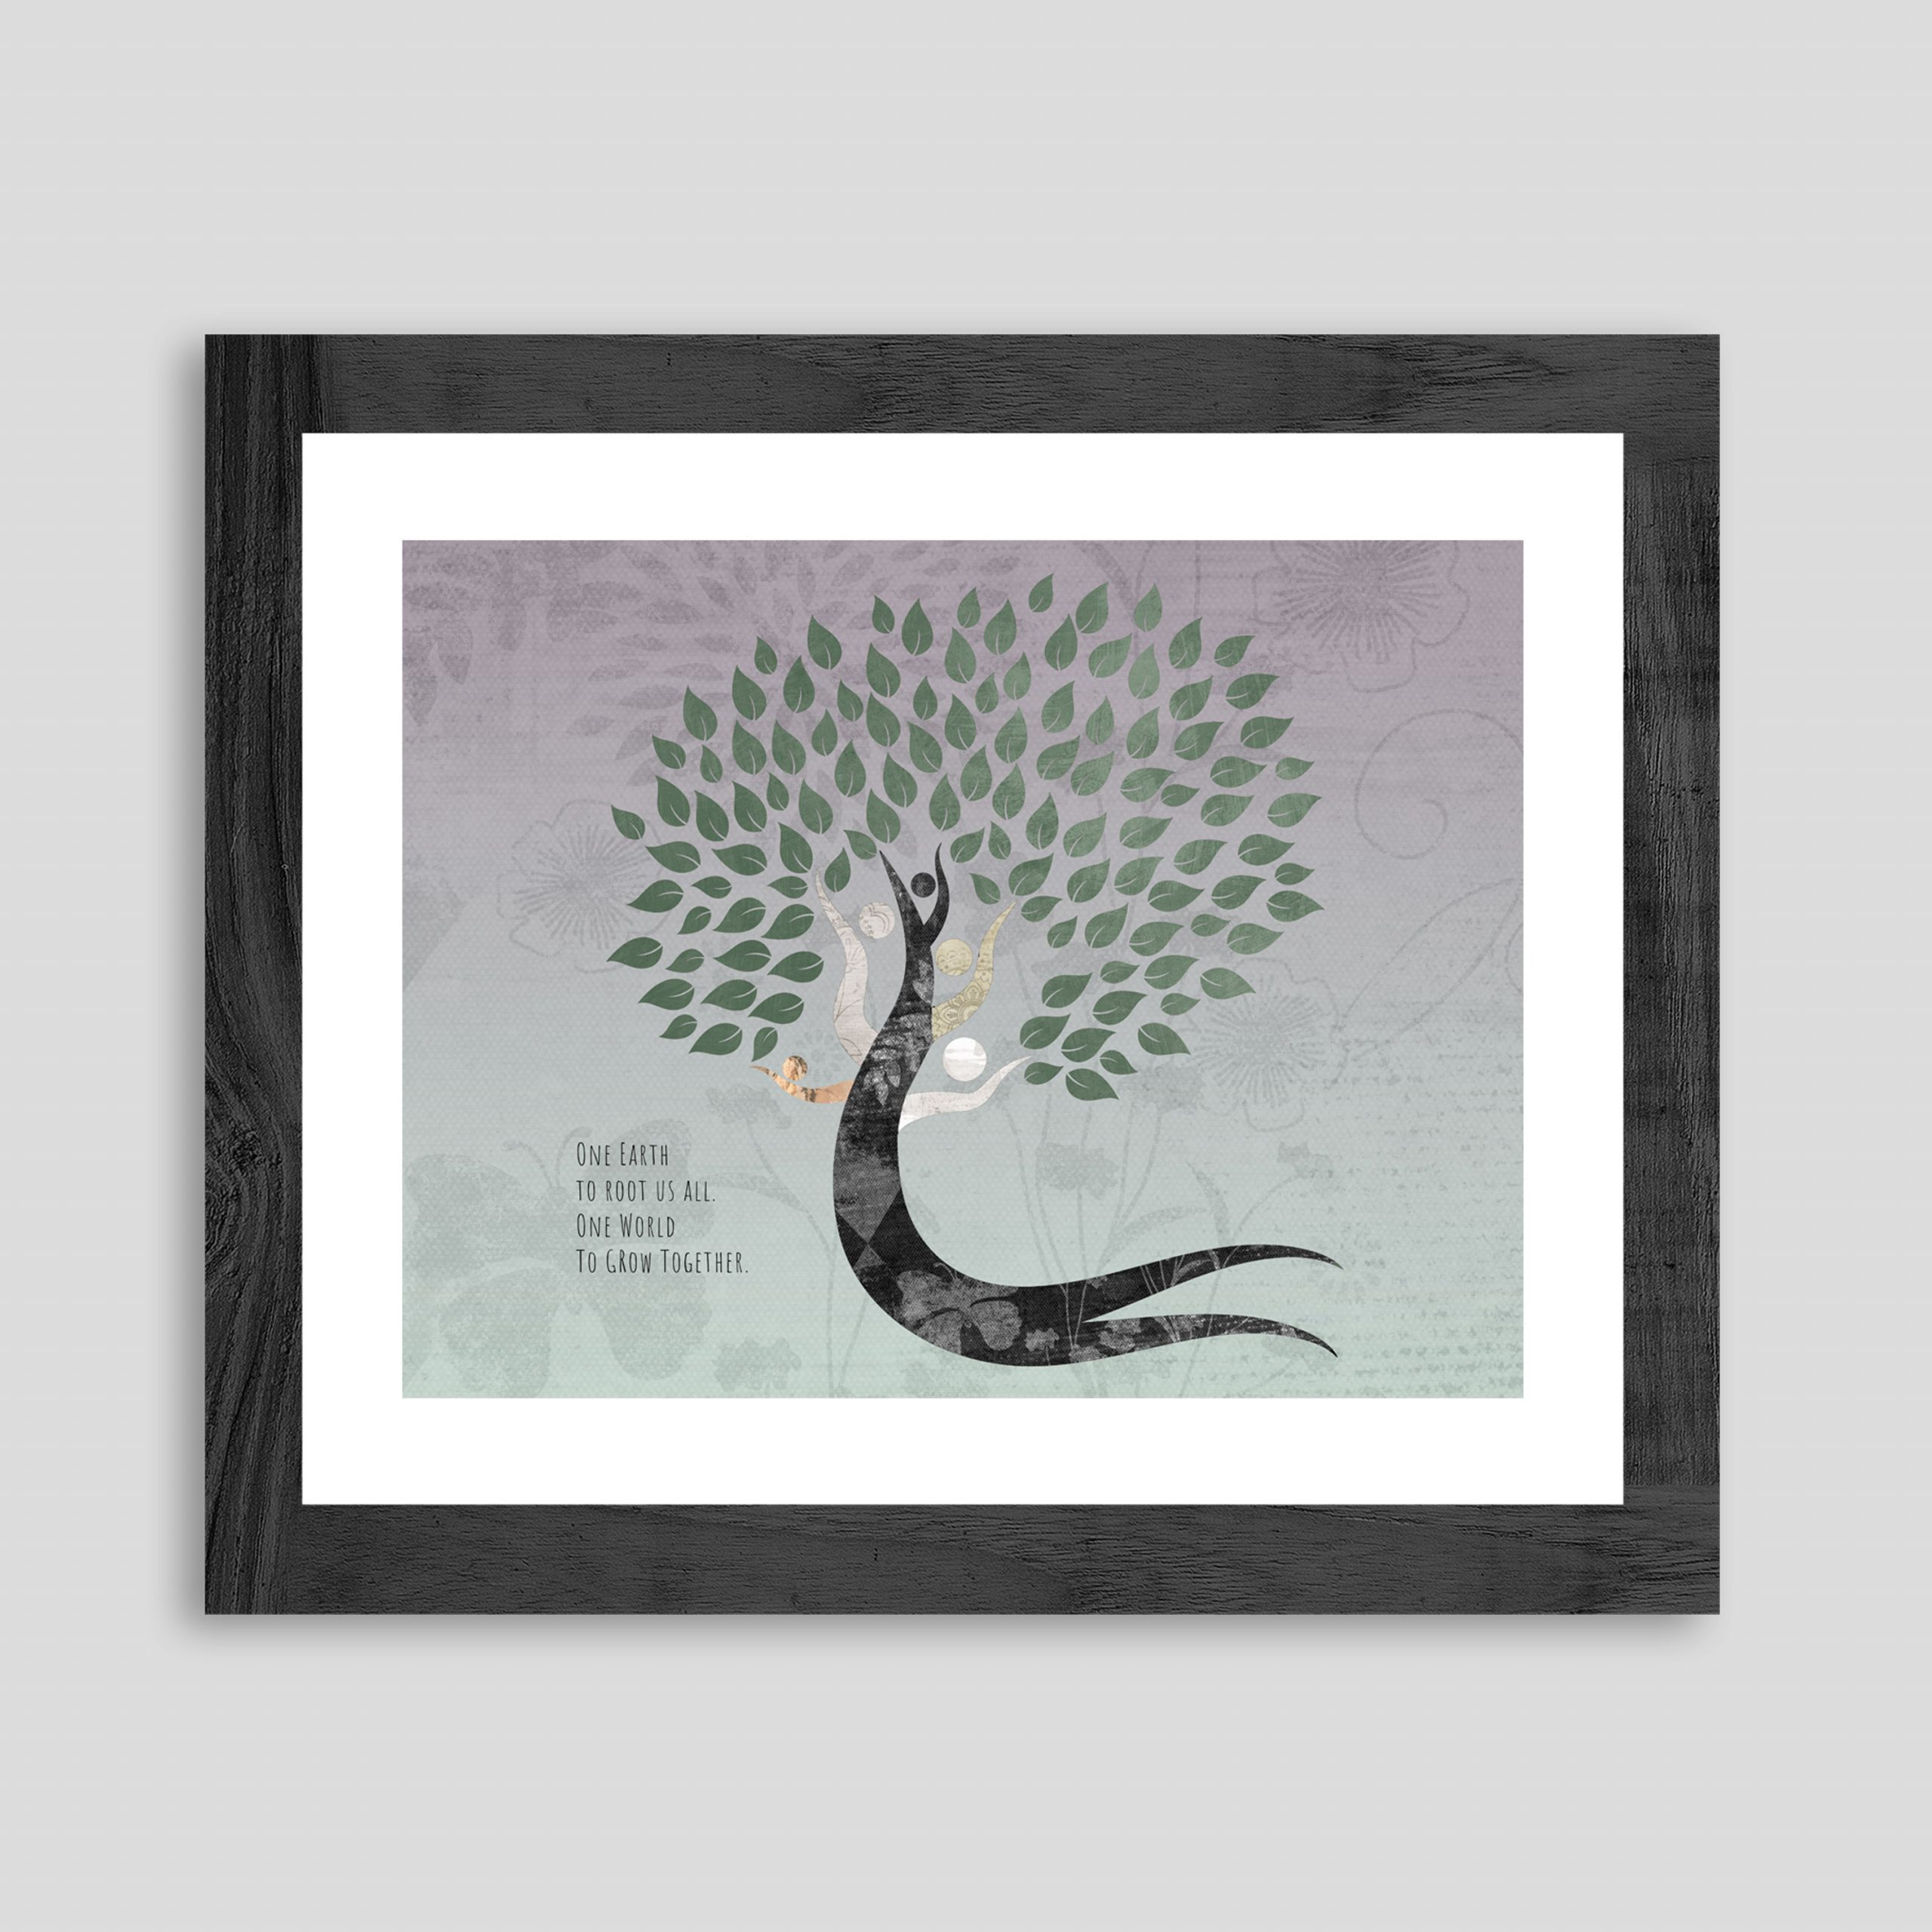 """A textured paper tree with multi-colored branches appears to dance in the wind and throw its leaves with the the quote, """"One Earth to root us all. One world to grow together."""""""